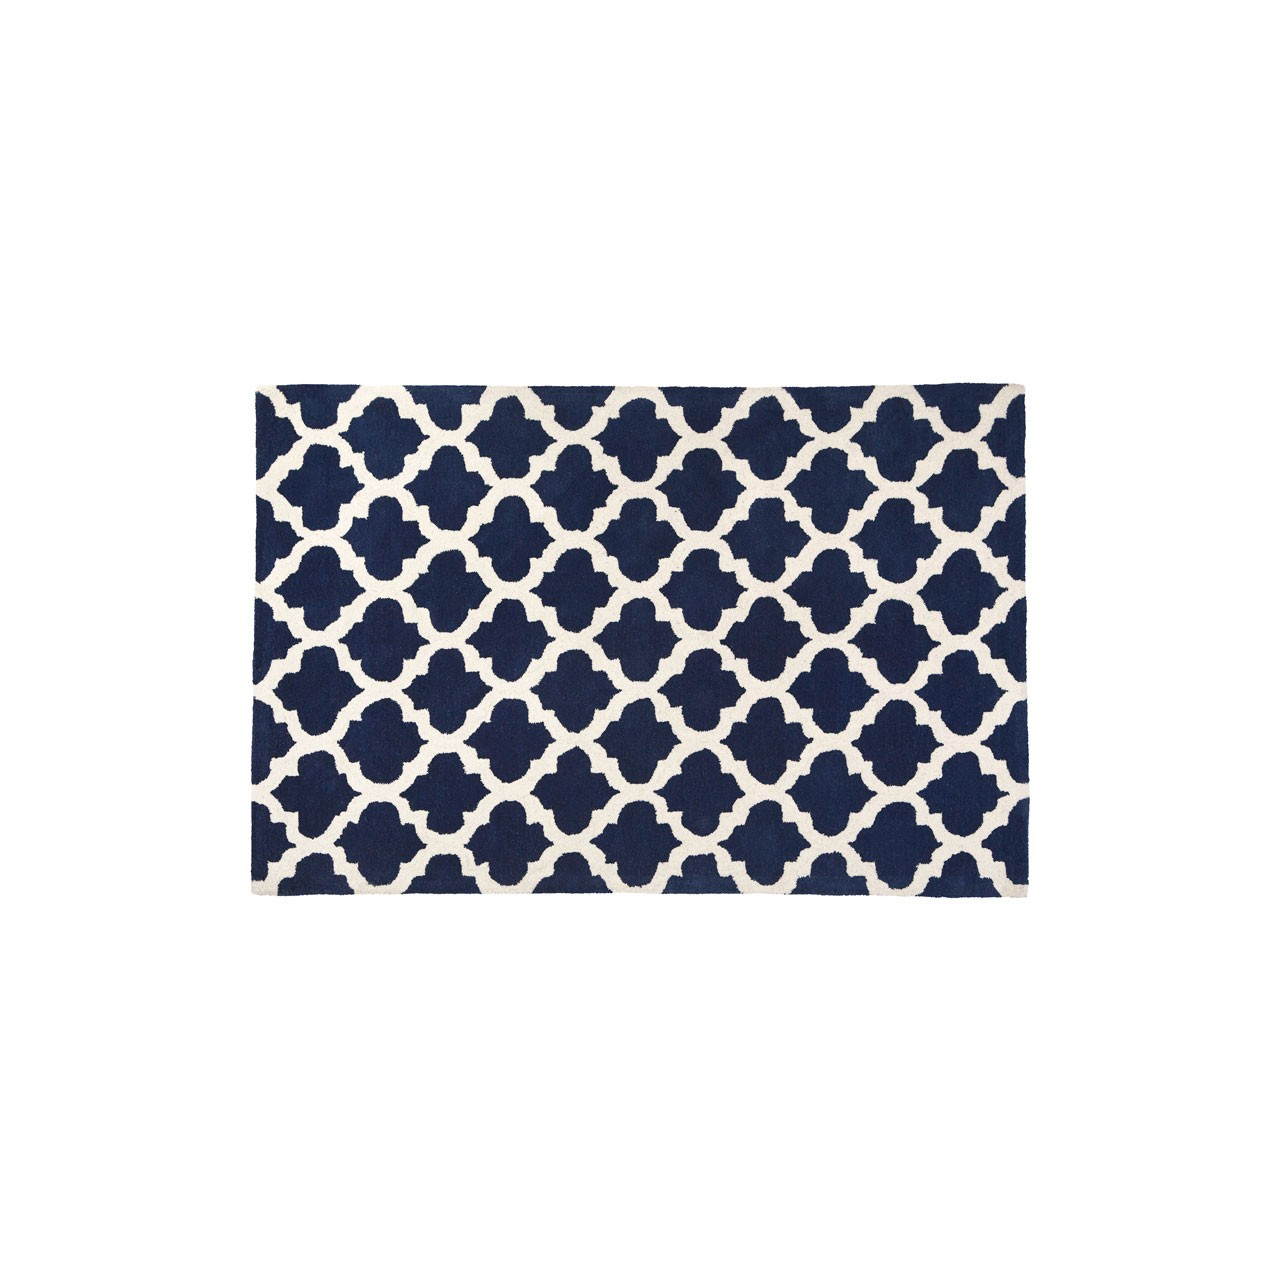 Prime Furnishing Kensington Rug - Navy Blue/White